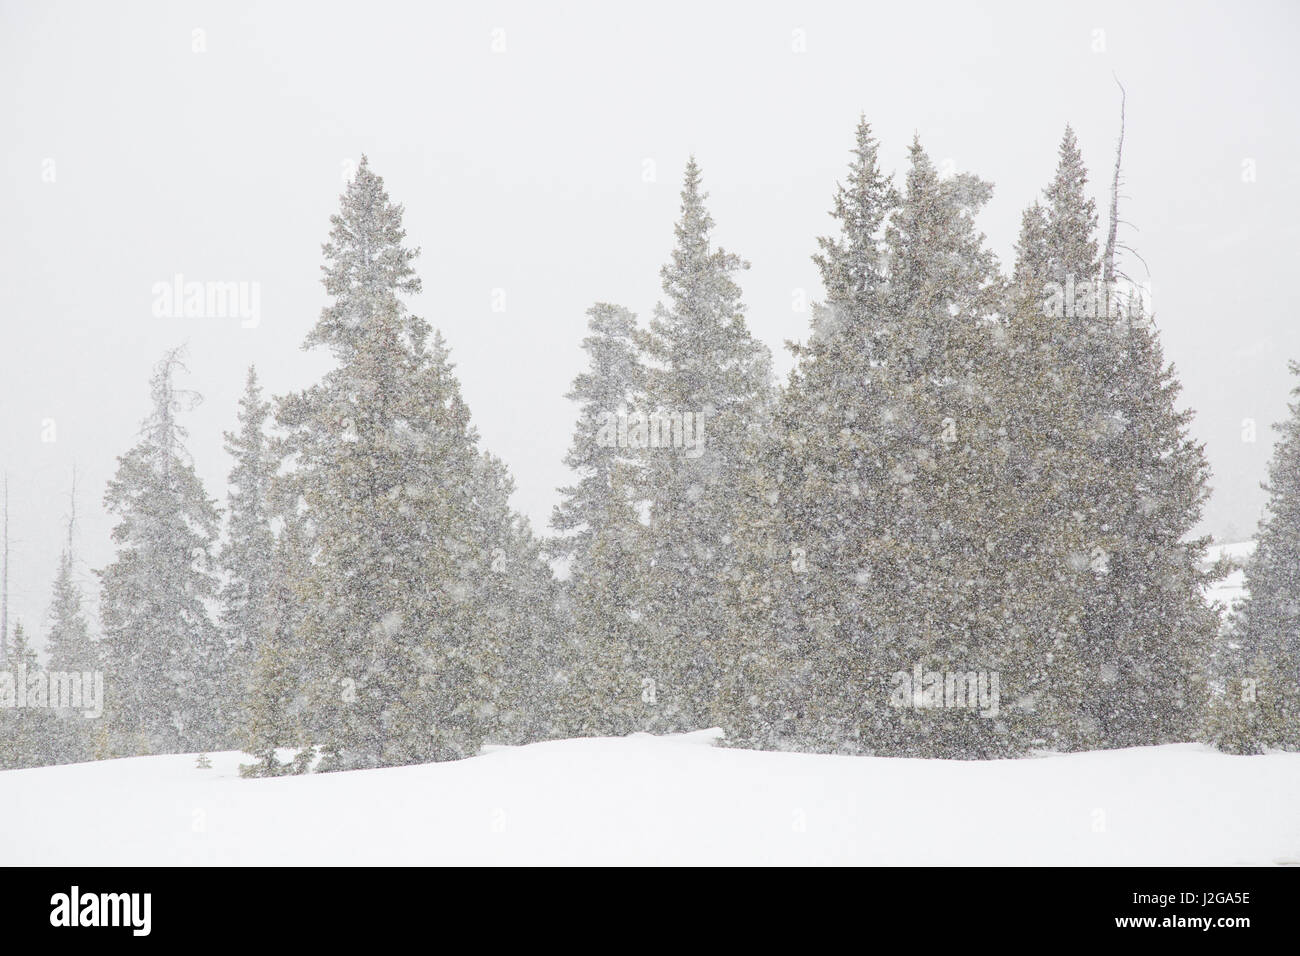 USA, Colorado. Summer snowstorm on Continental Divide. Credit as: Don Grall / Jaynes Gallery / DanitaDelimont.com - Stock Image